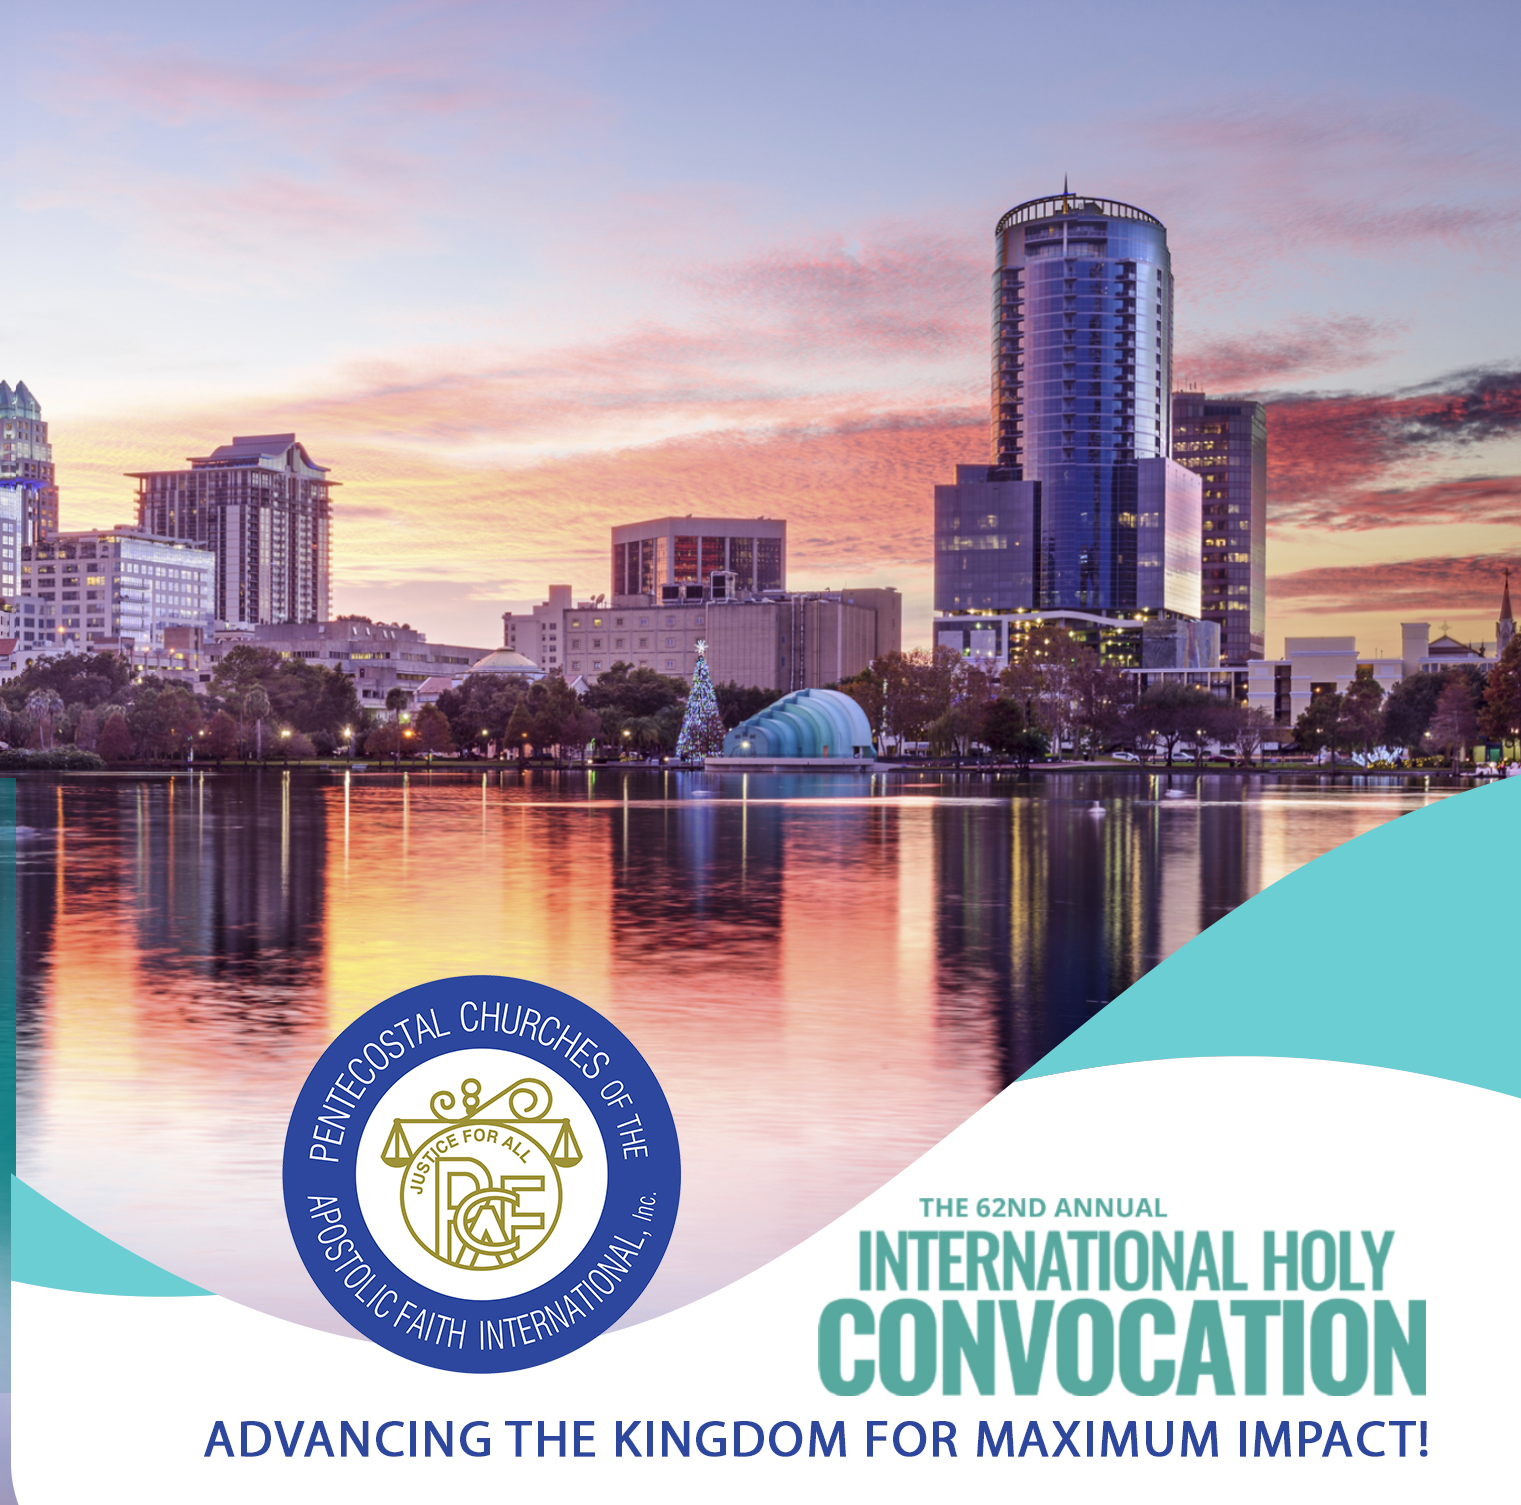 Video Digital Download - Friday Morning - Int'l Holy Convocation 2019 Grand Opening